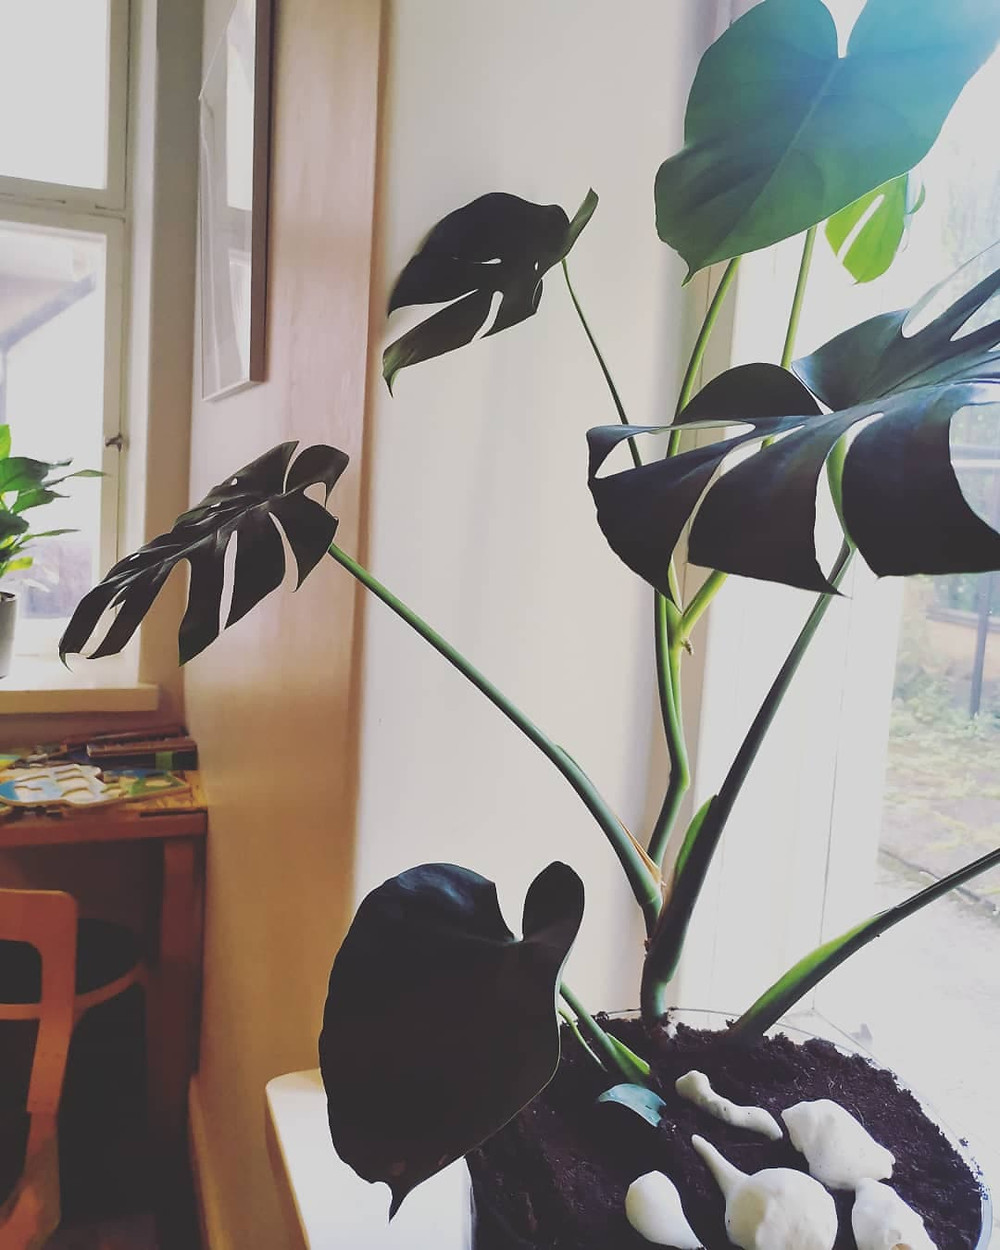 Peikonlehti, Monstera